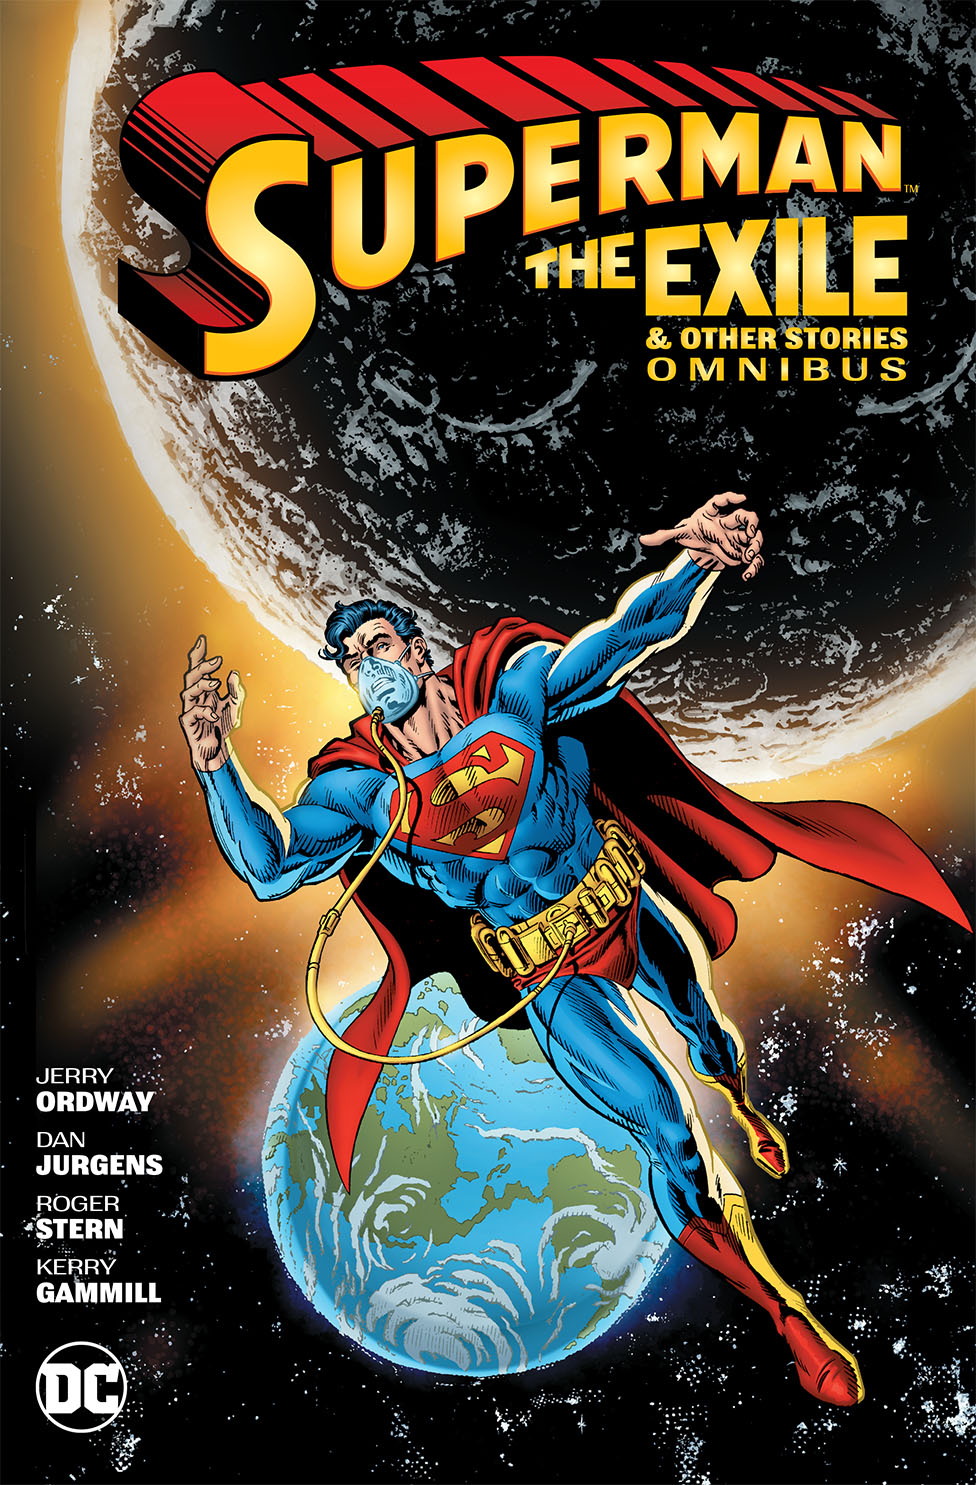 SUPERMAN EXILE AND OTHER STORIES OMNIBUS HC (OCT170379)